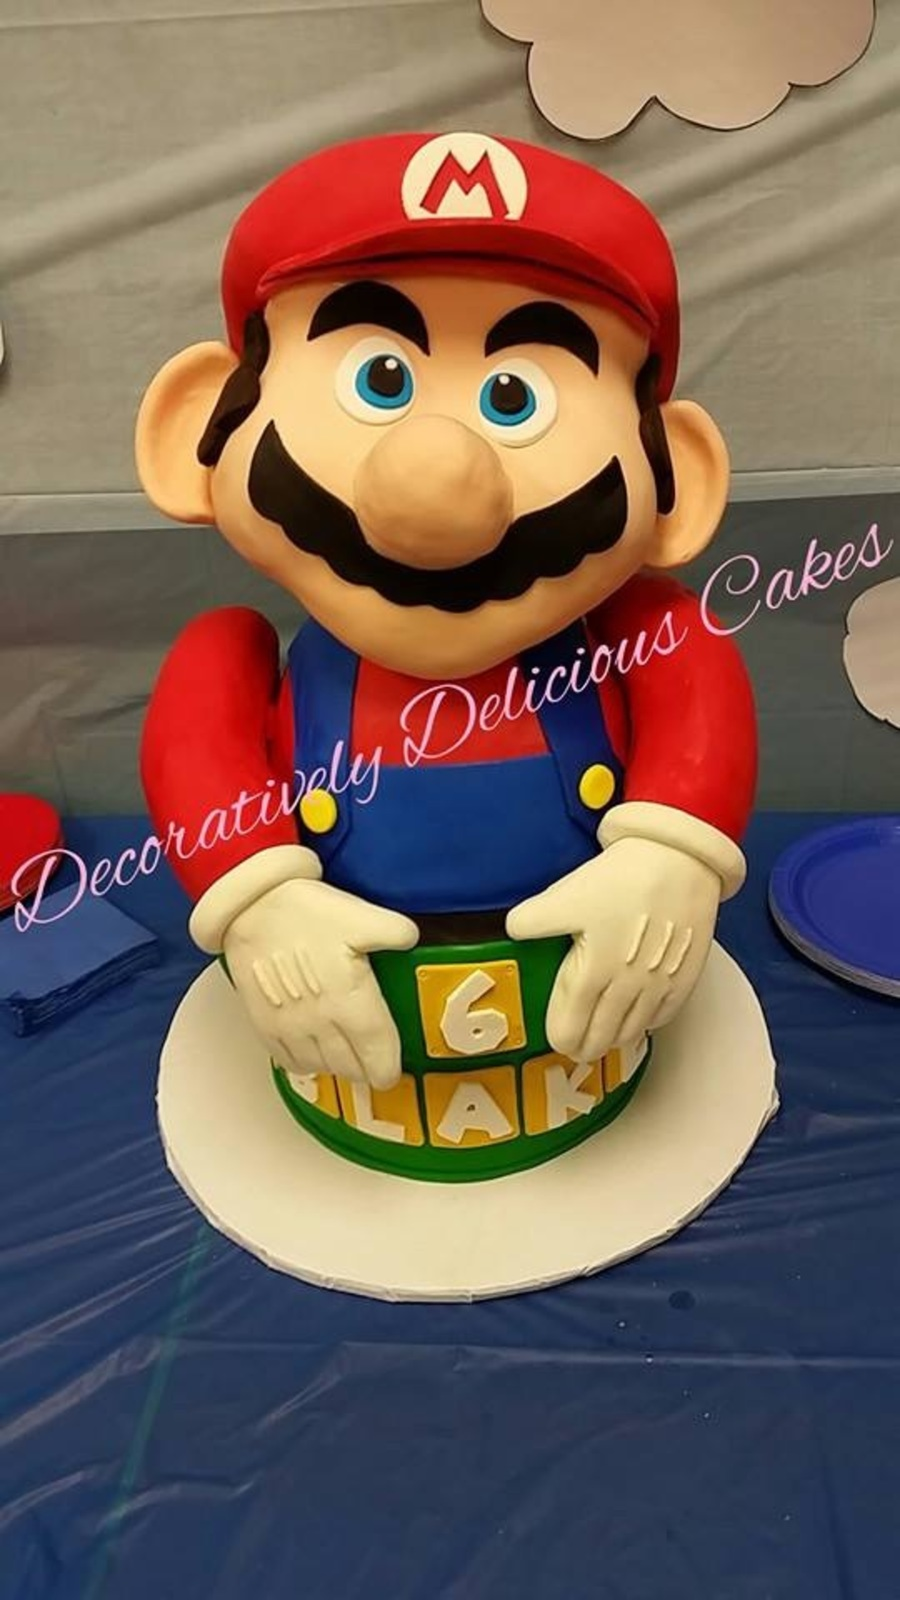 Surprising Its Me Mario My Boys 6Th Birthday Cake Cakecentral Com Funny Birthday Cards Online Barepcheapnameinfo